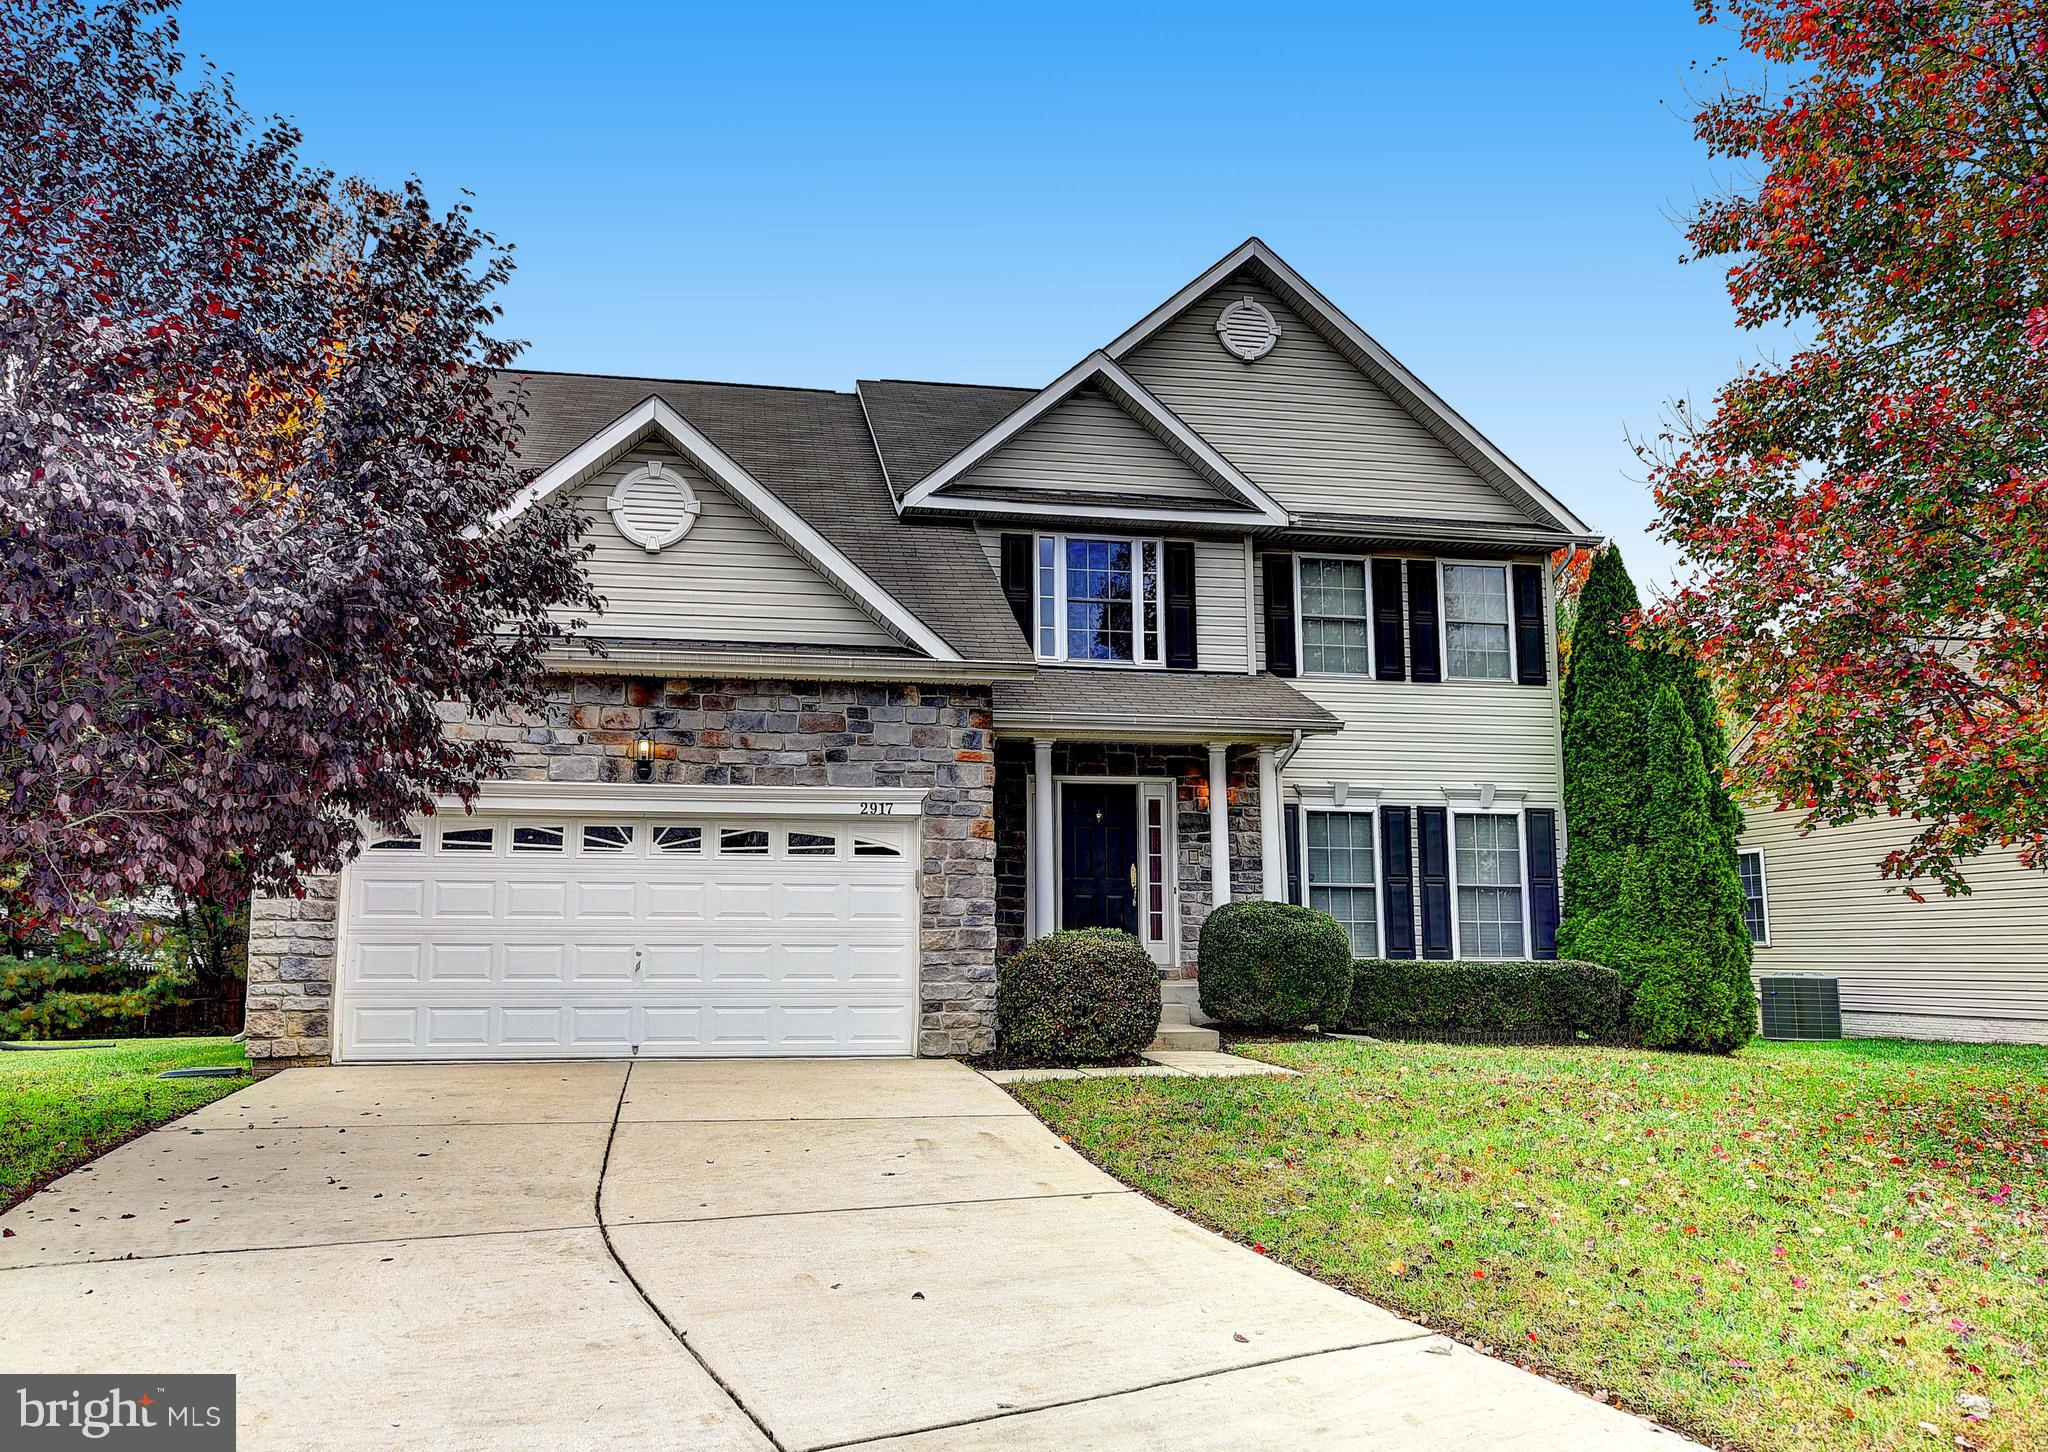 Just listed in the Forest Oaks community. This 4br 2.5 bath colonial is ready for you to call home.